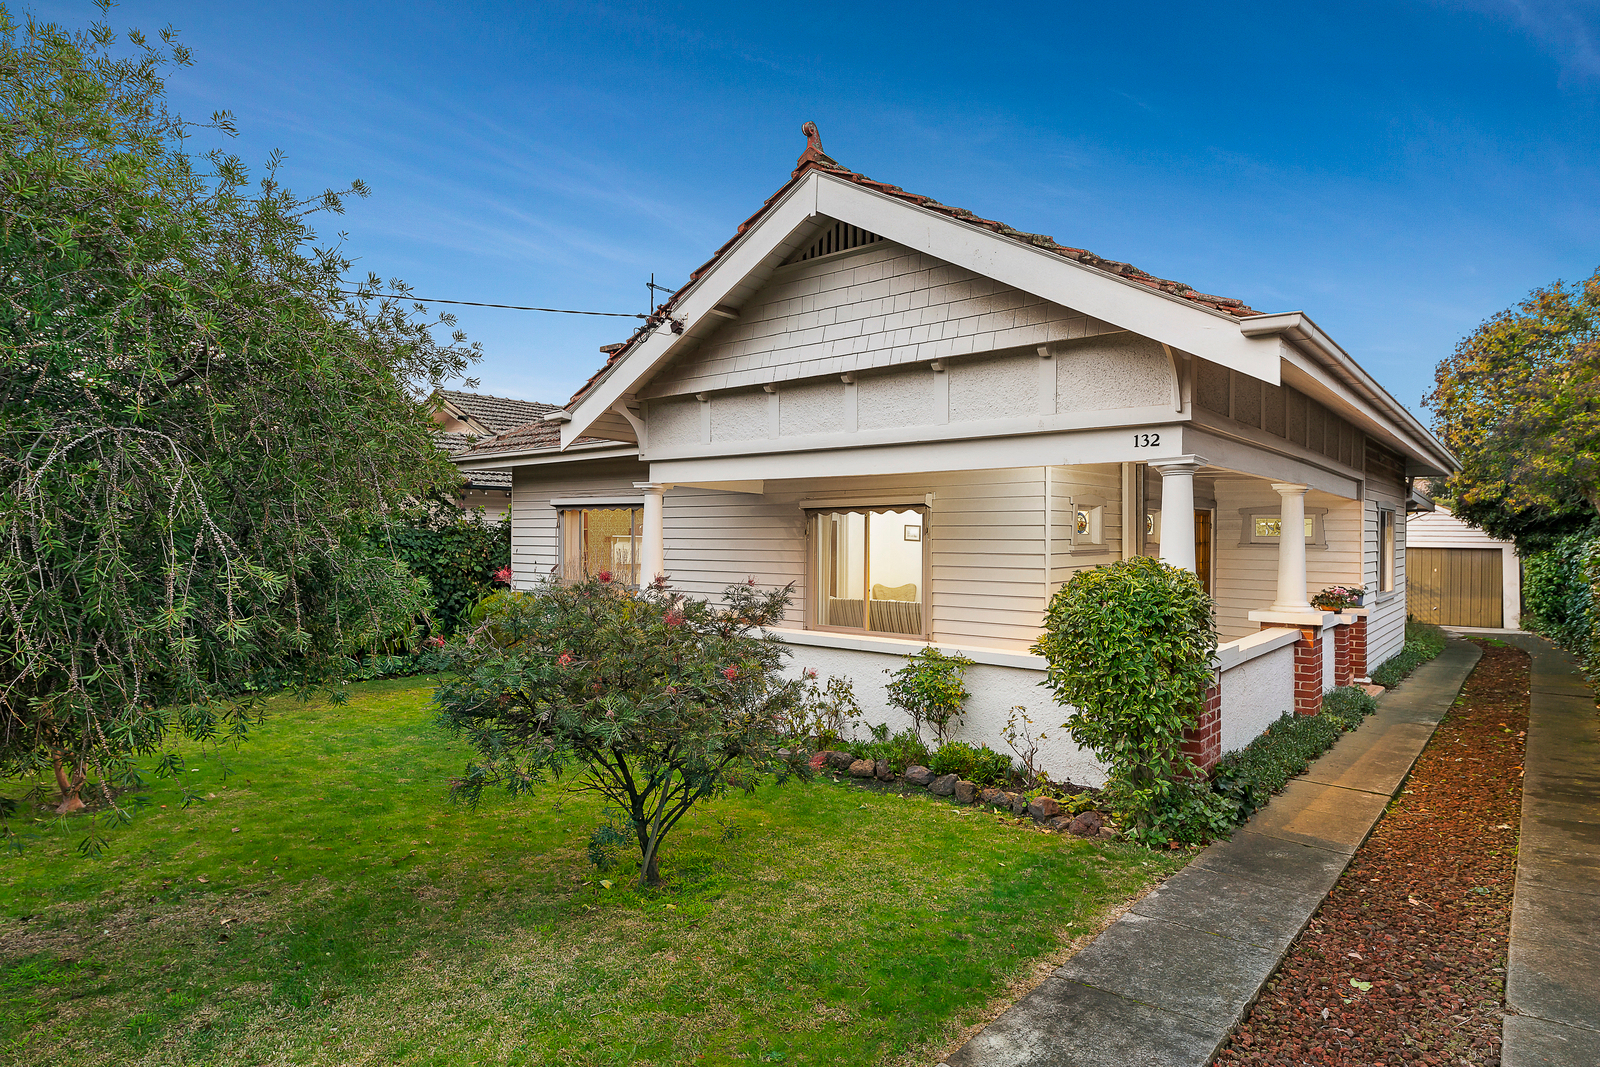 132 Normanby Road, Kew East 3102 - Image 1